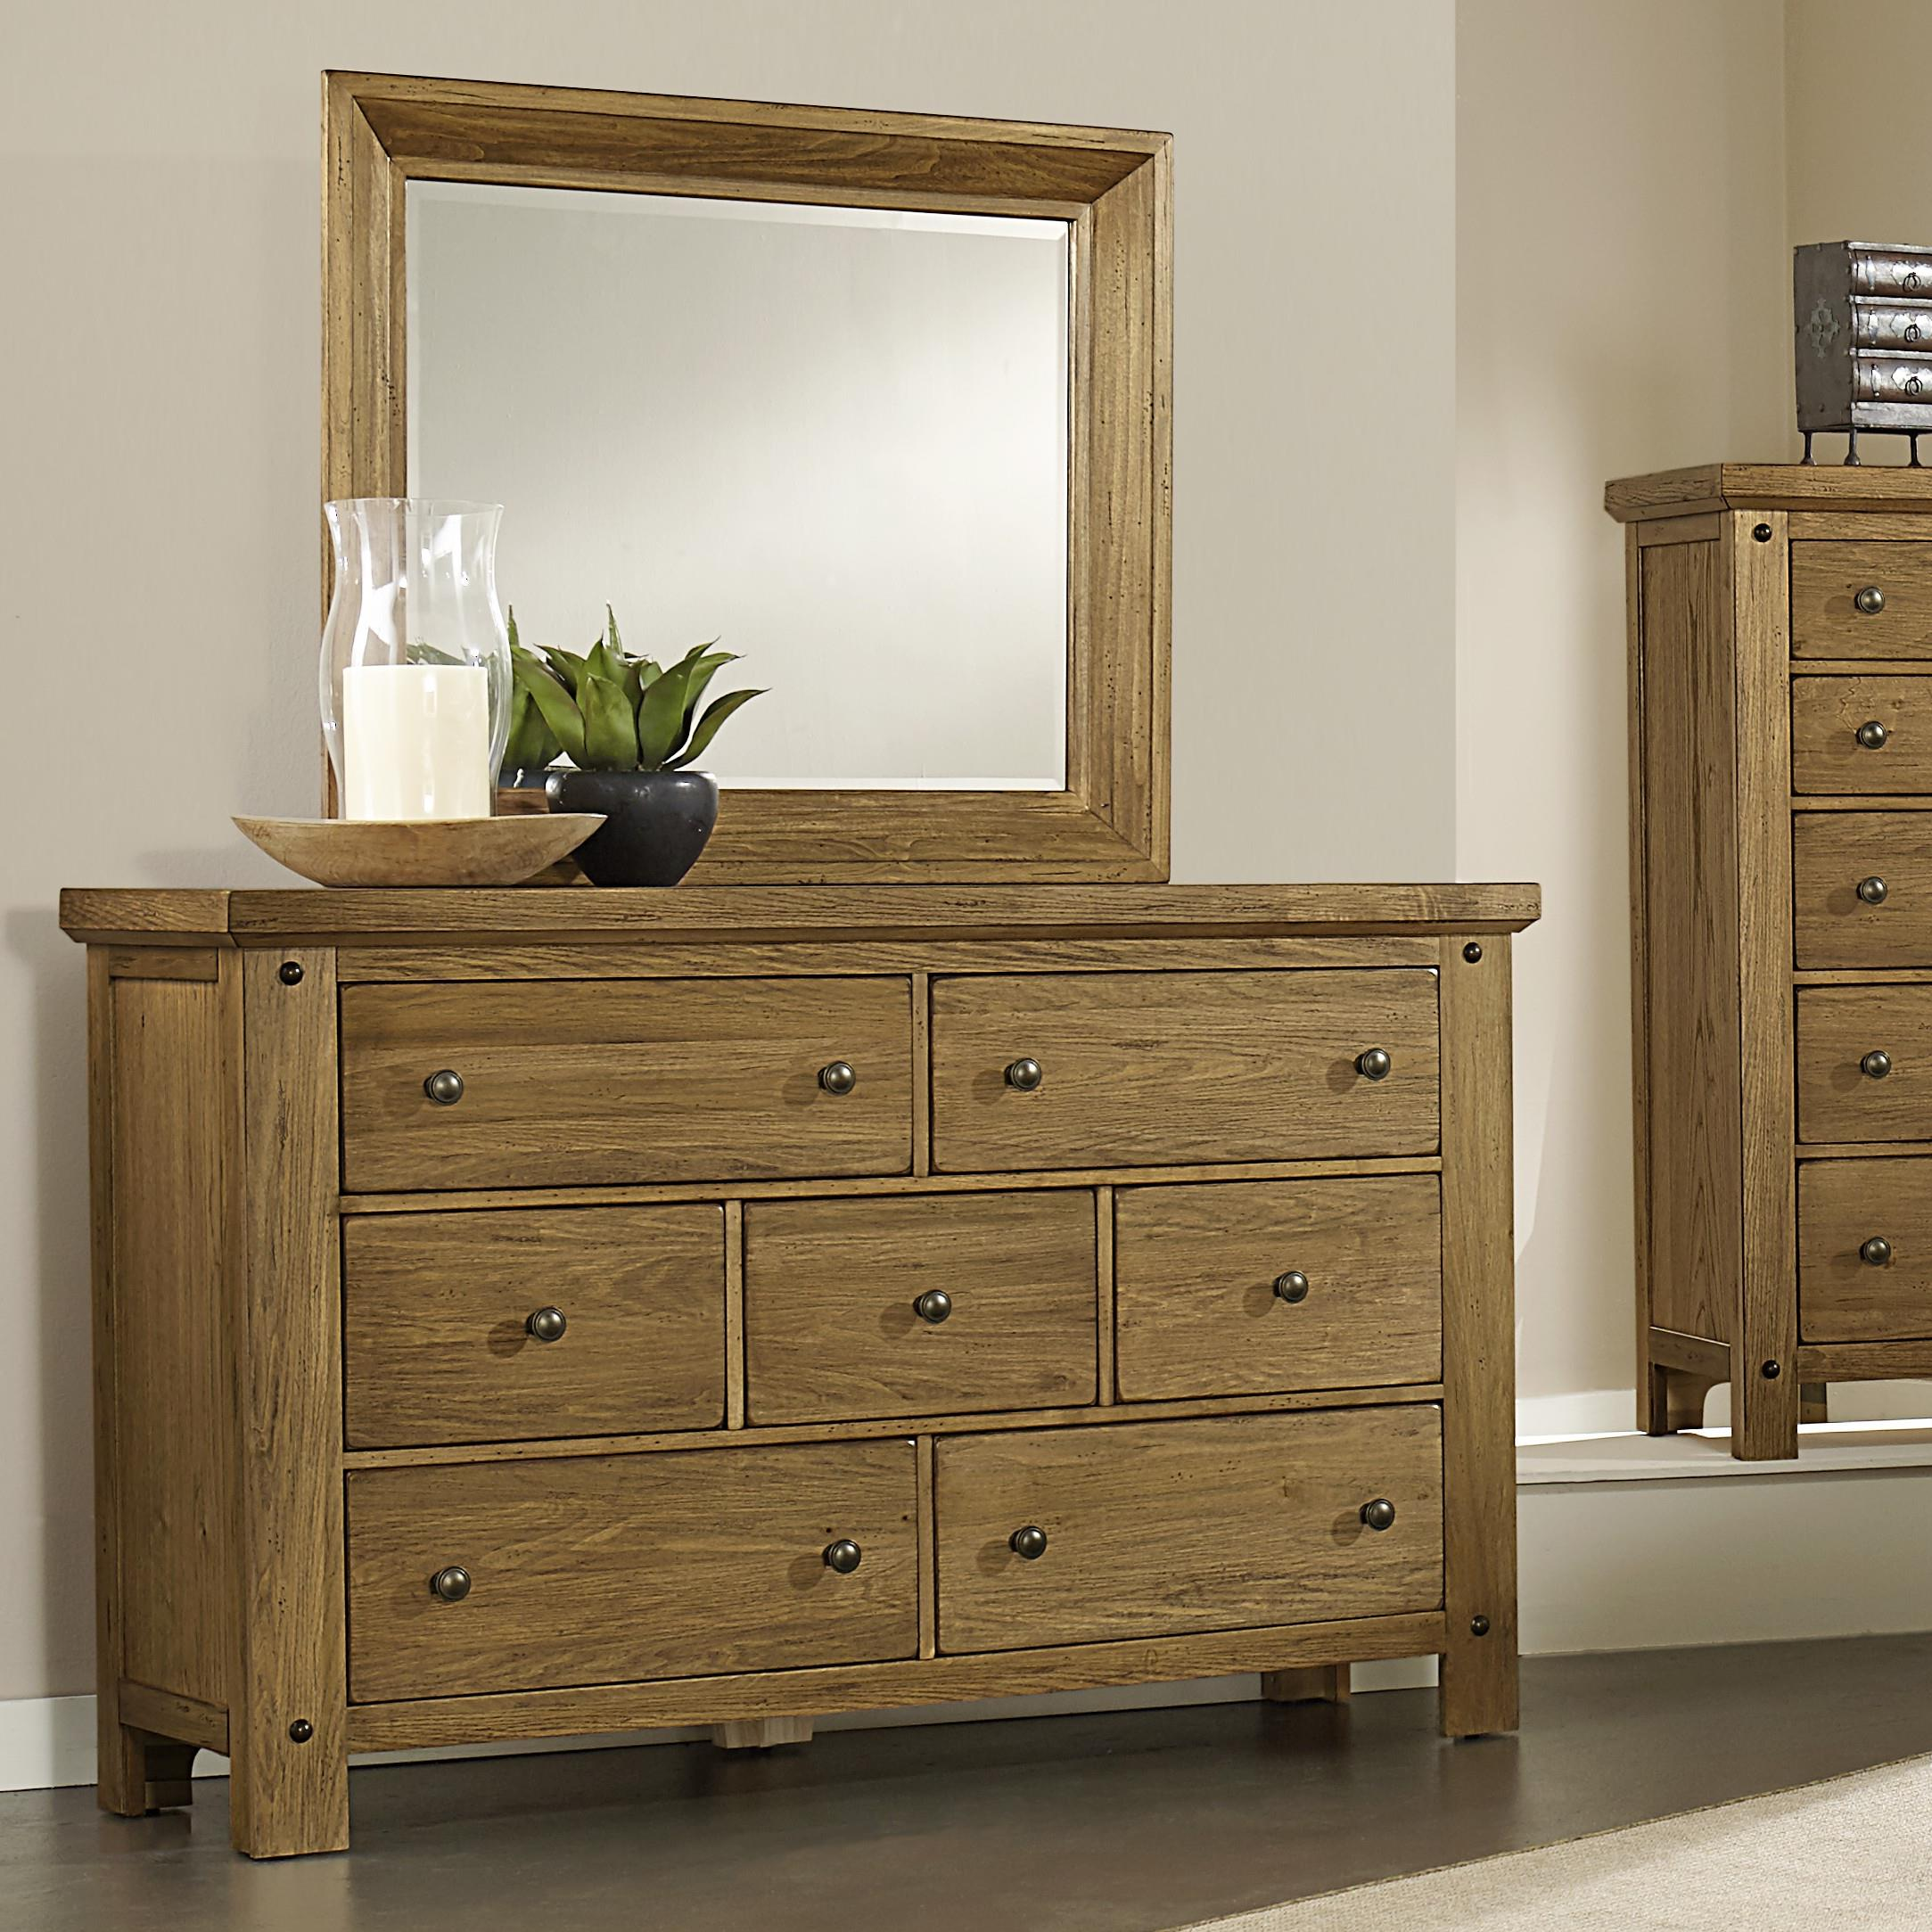 Vaughan Bassett Collaboration Dresser & Mirror - Item Number: 614-002+446